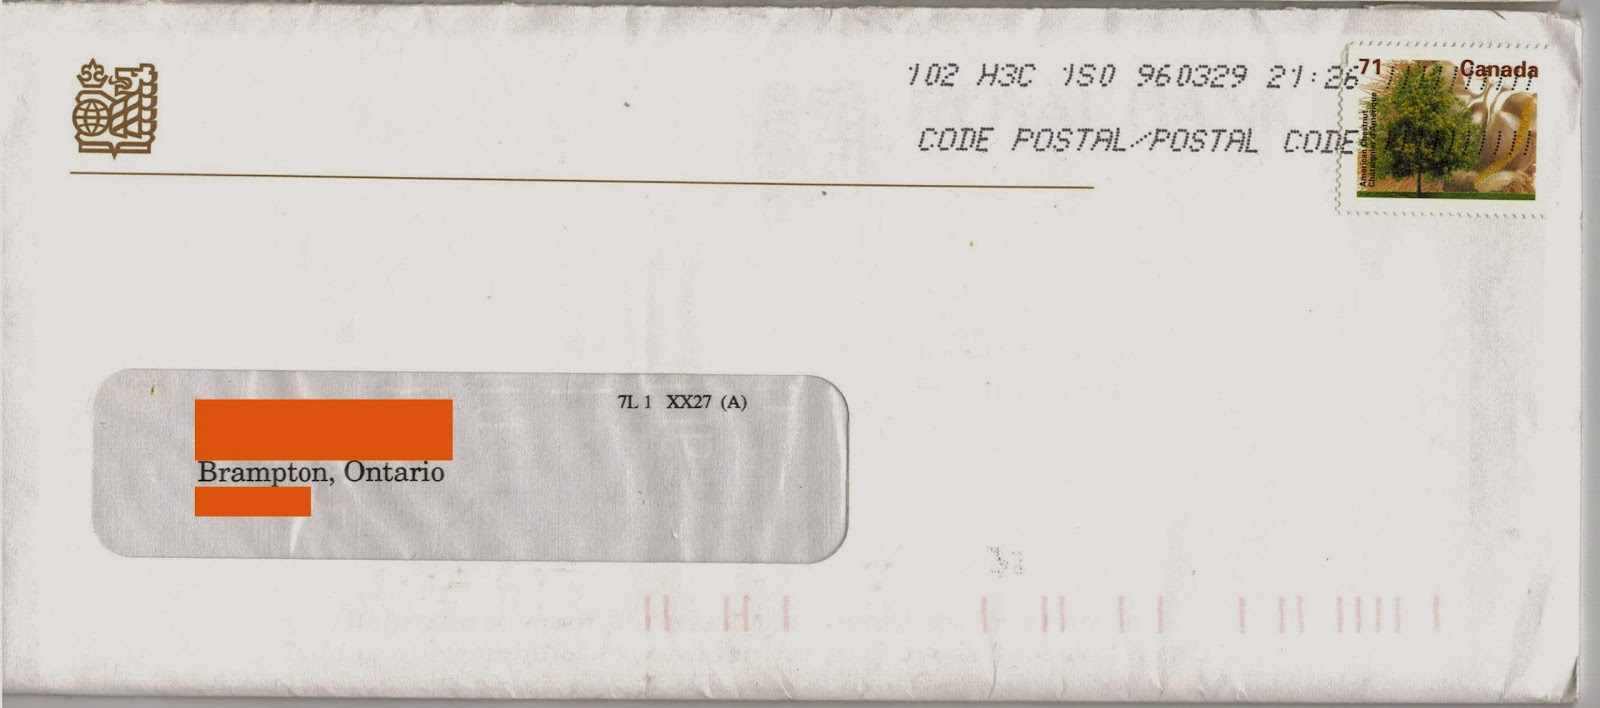 Cents paying the nd step letter rate greater than g equal - Ivry code postal ...